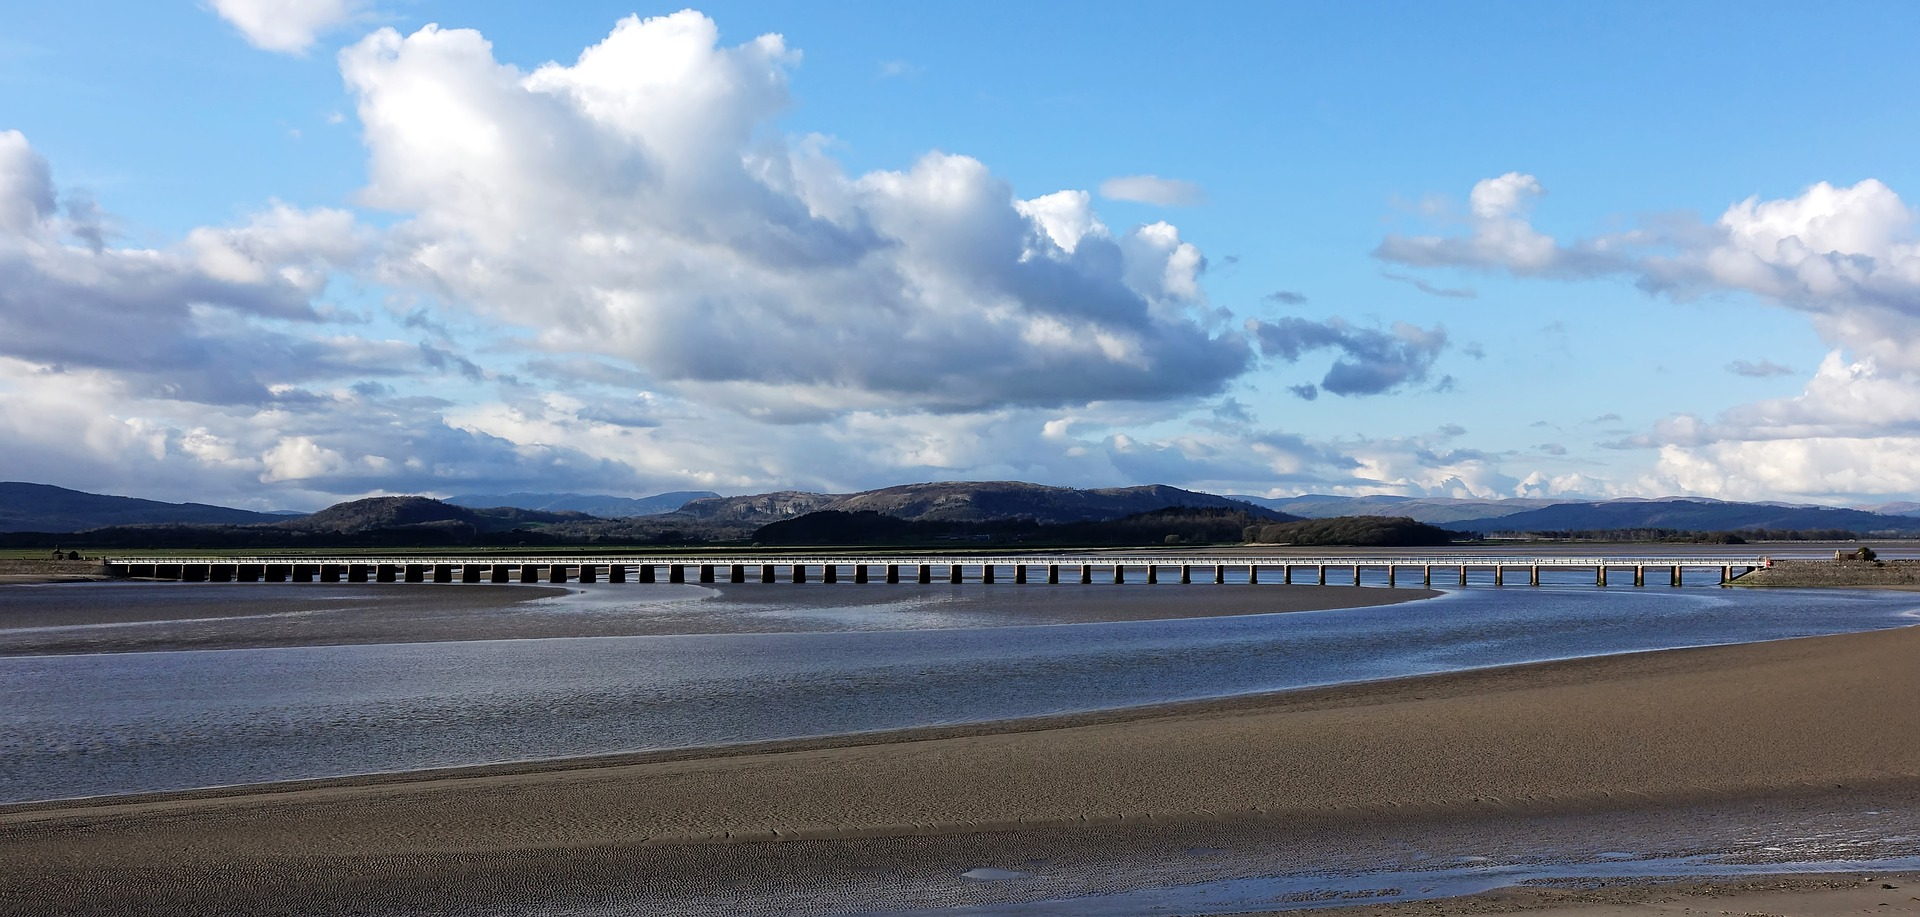 Viaduct near Arnside Knott